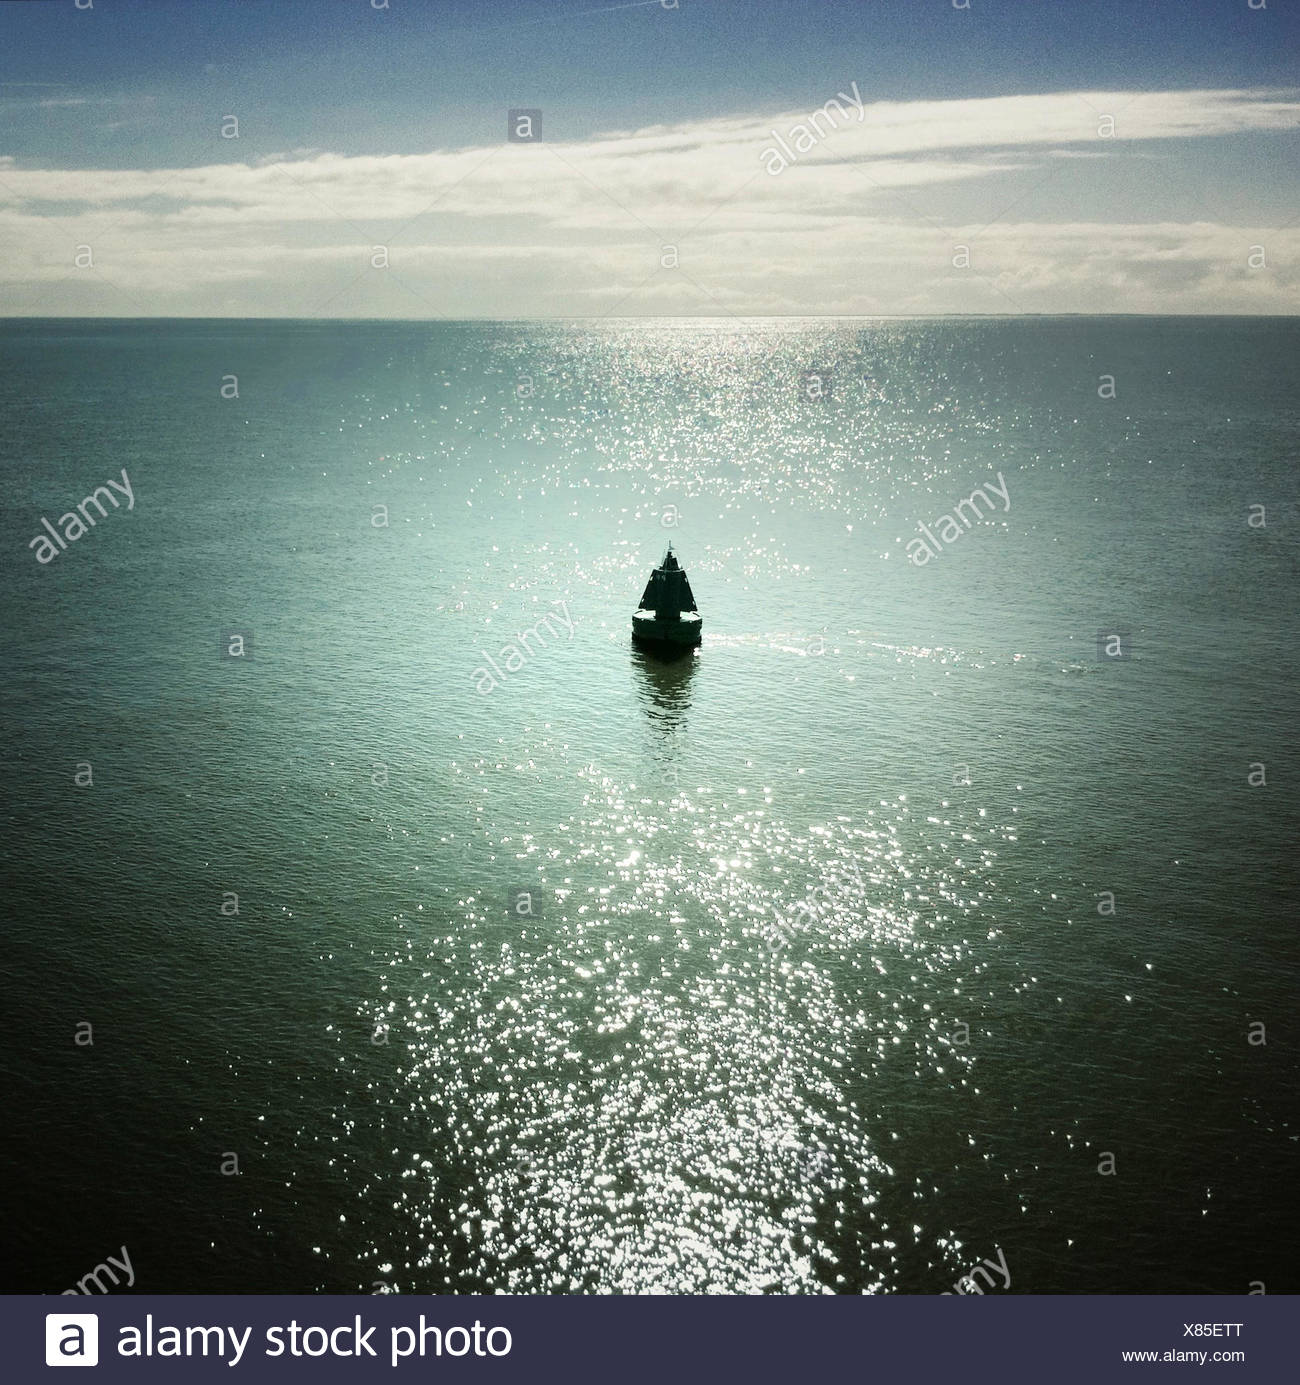 View of buoy at sea - Stock Image